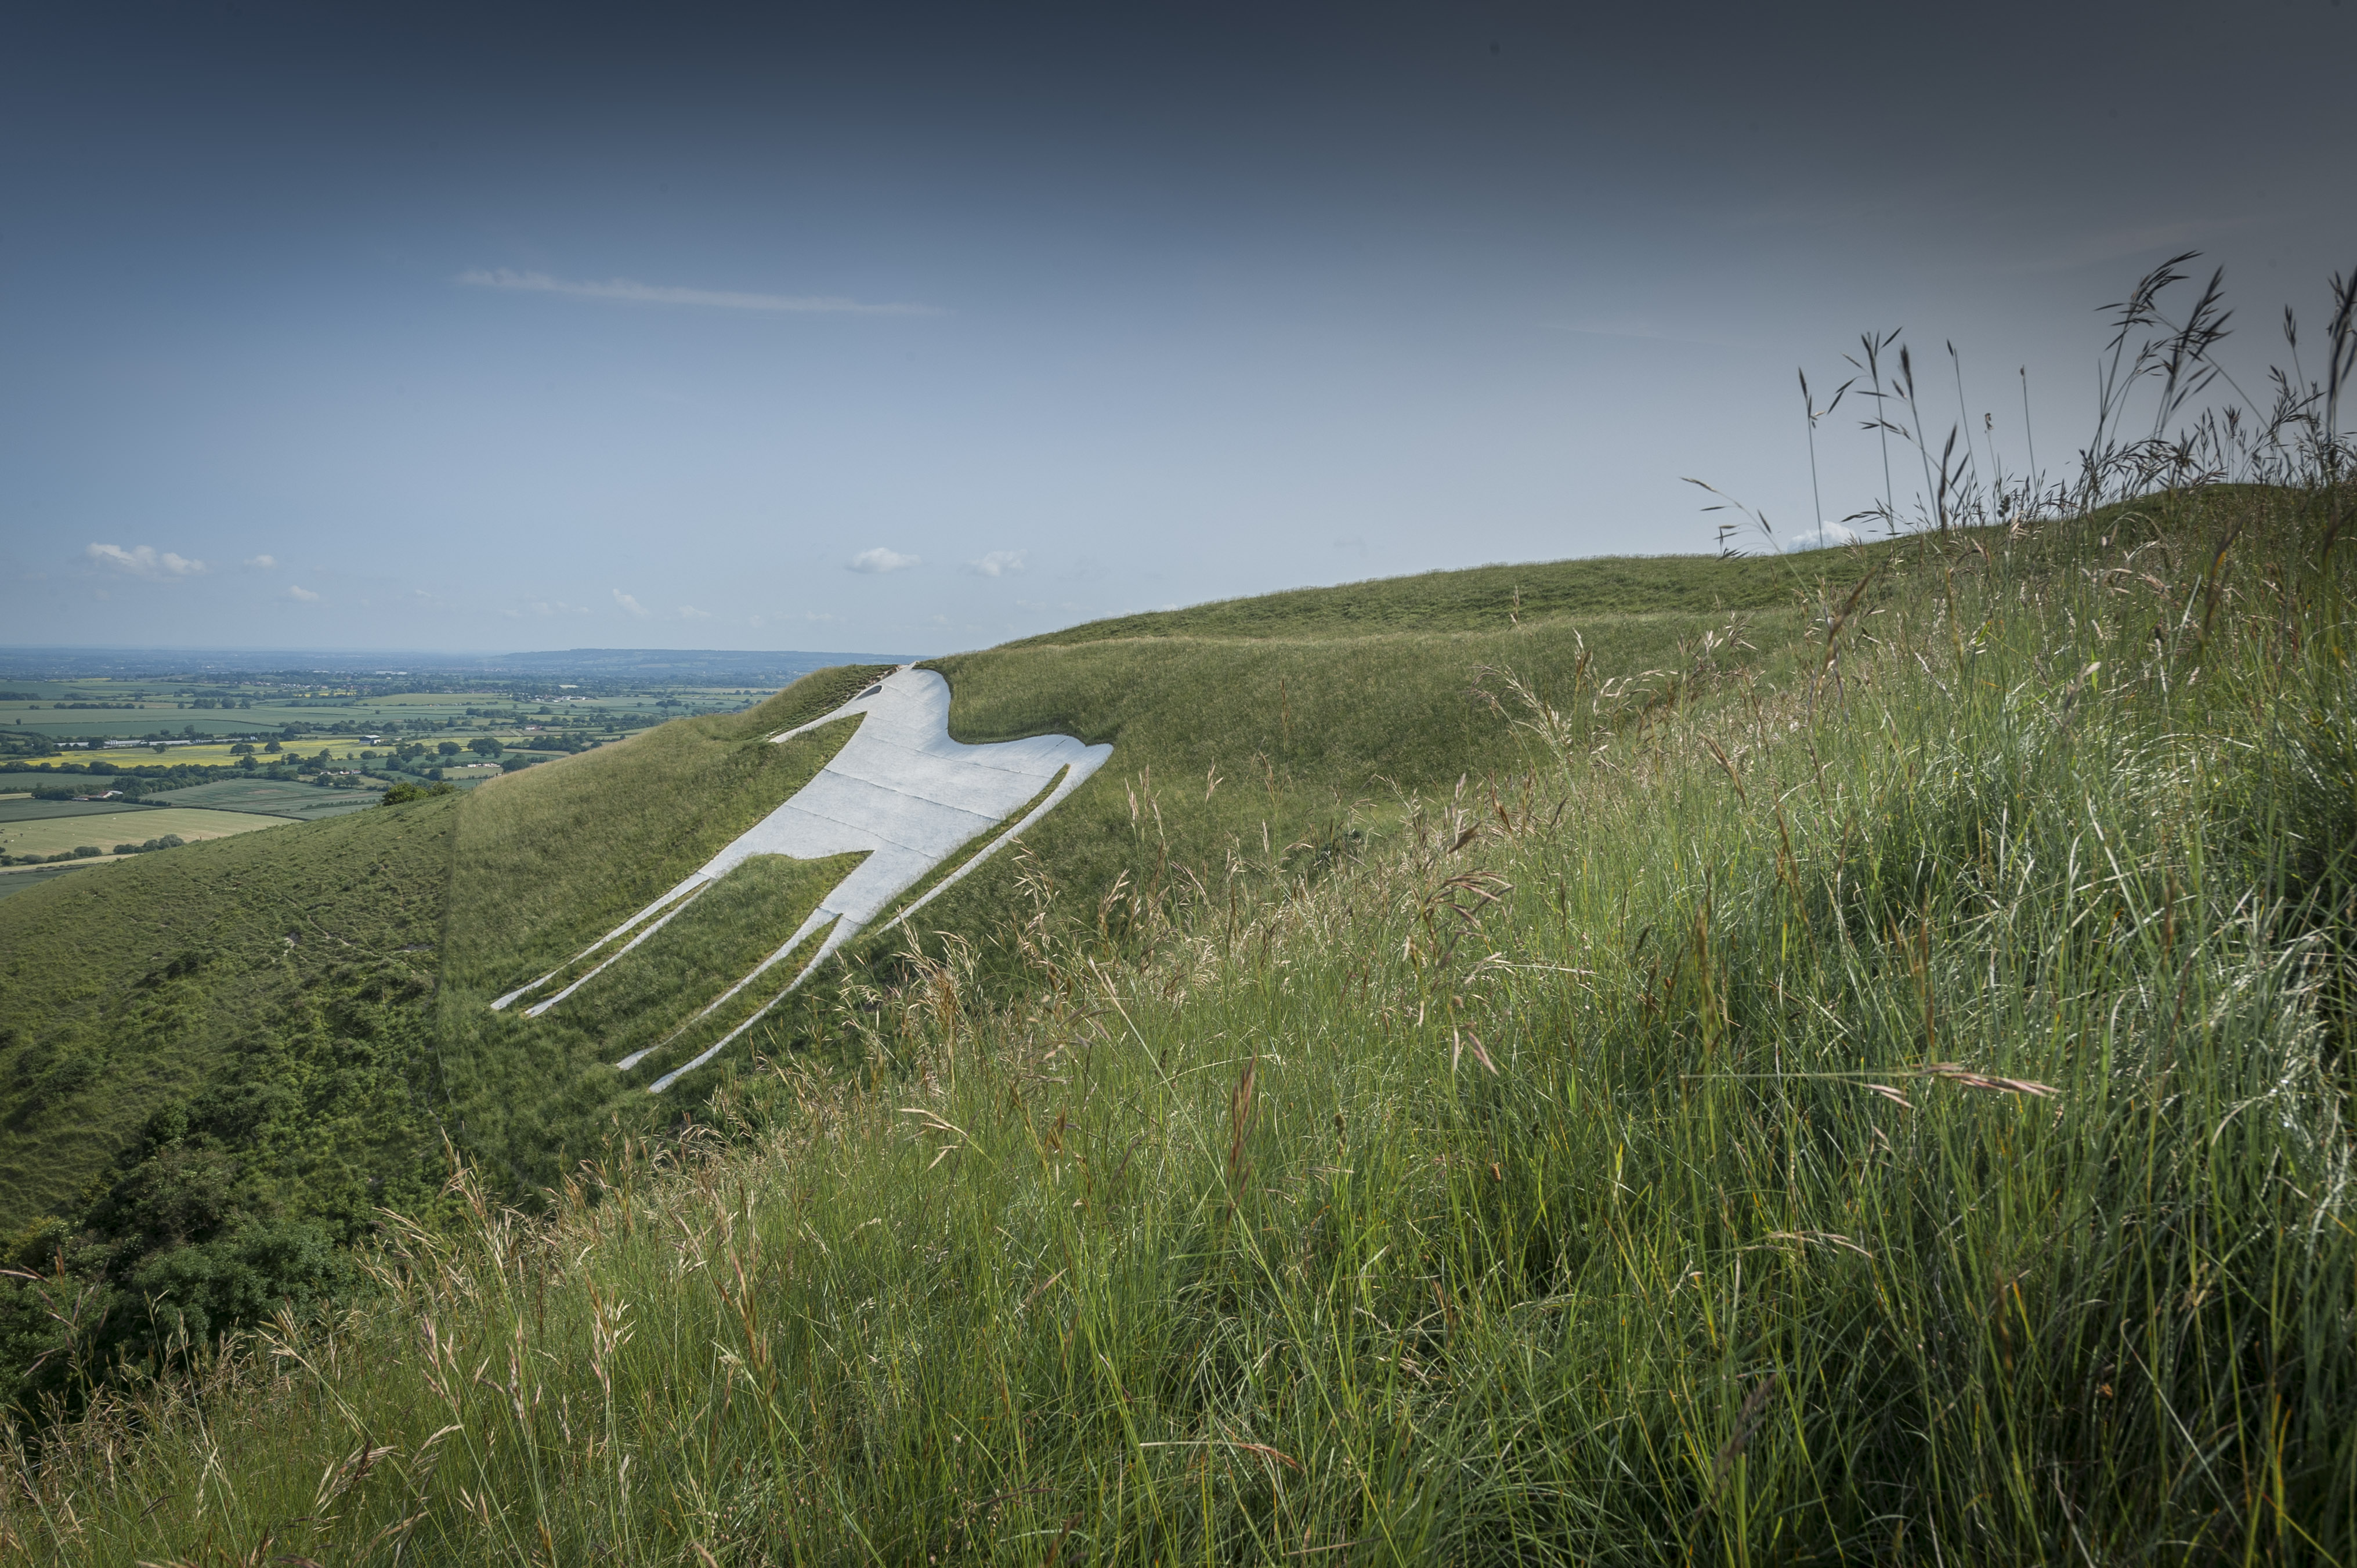 Discover Wiltshire's oldest White Horse chalk carving